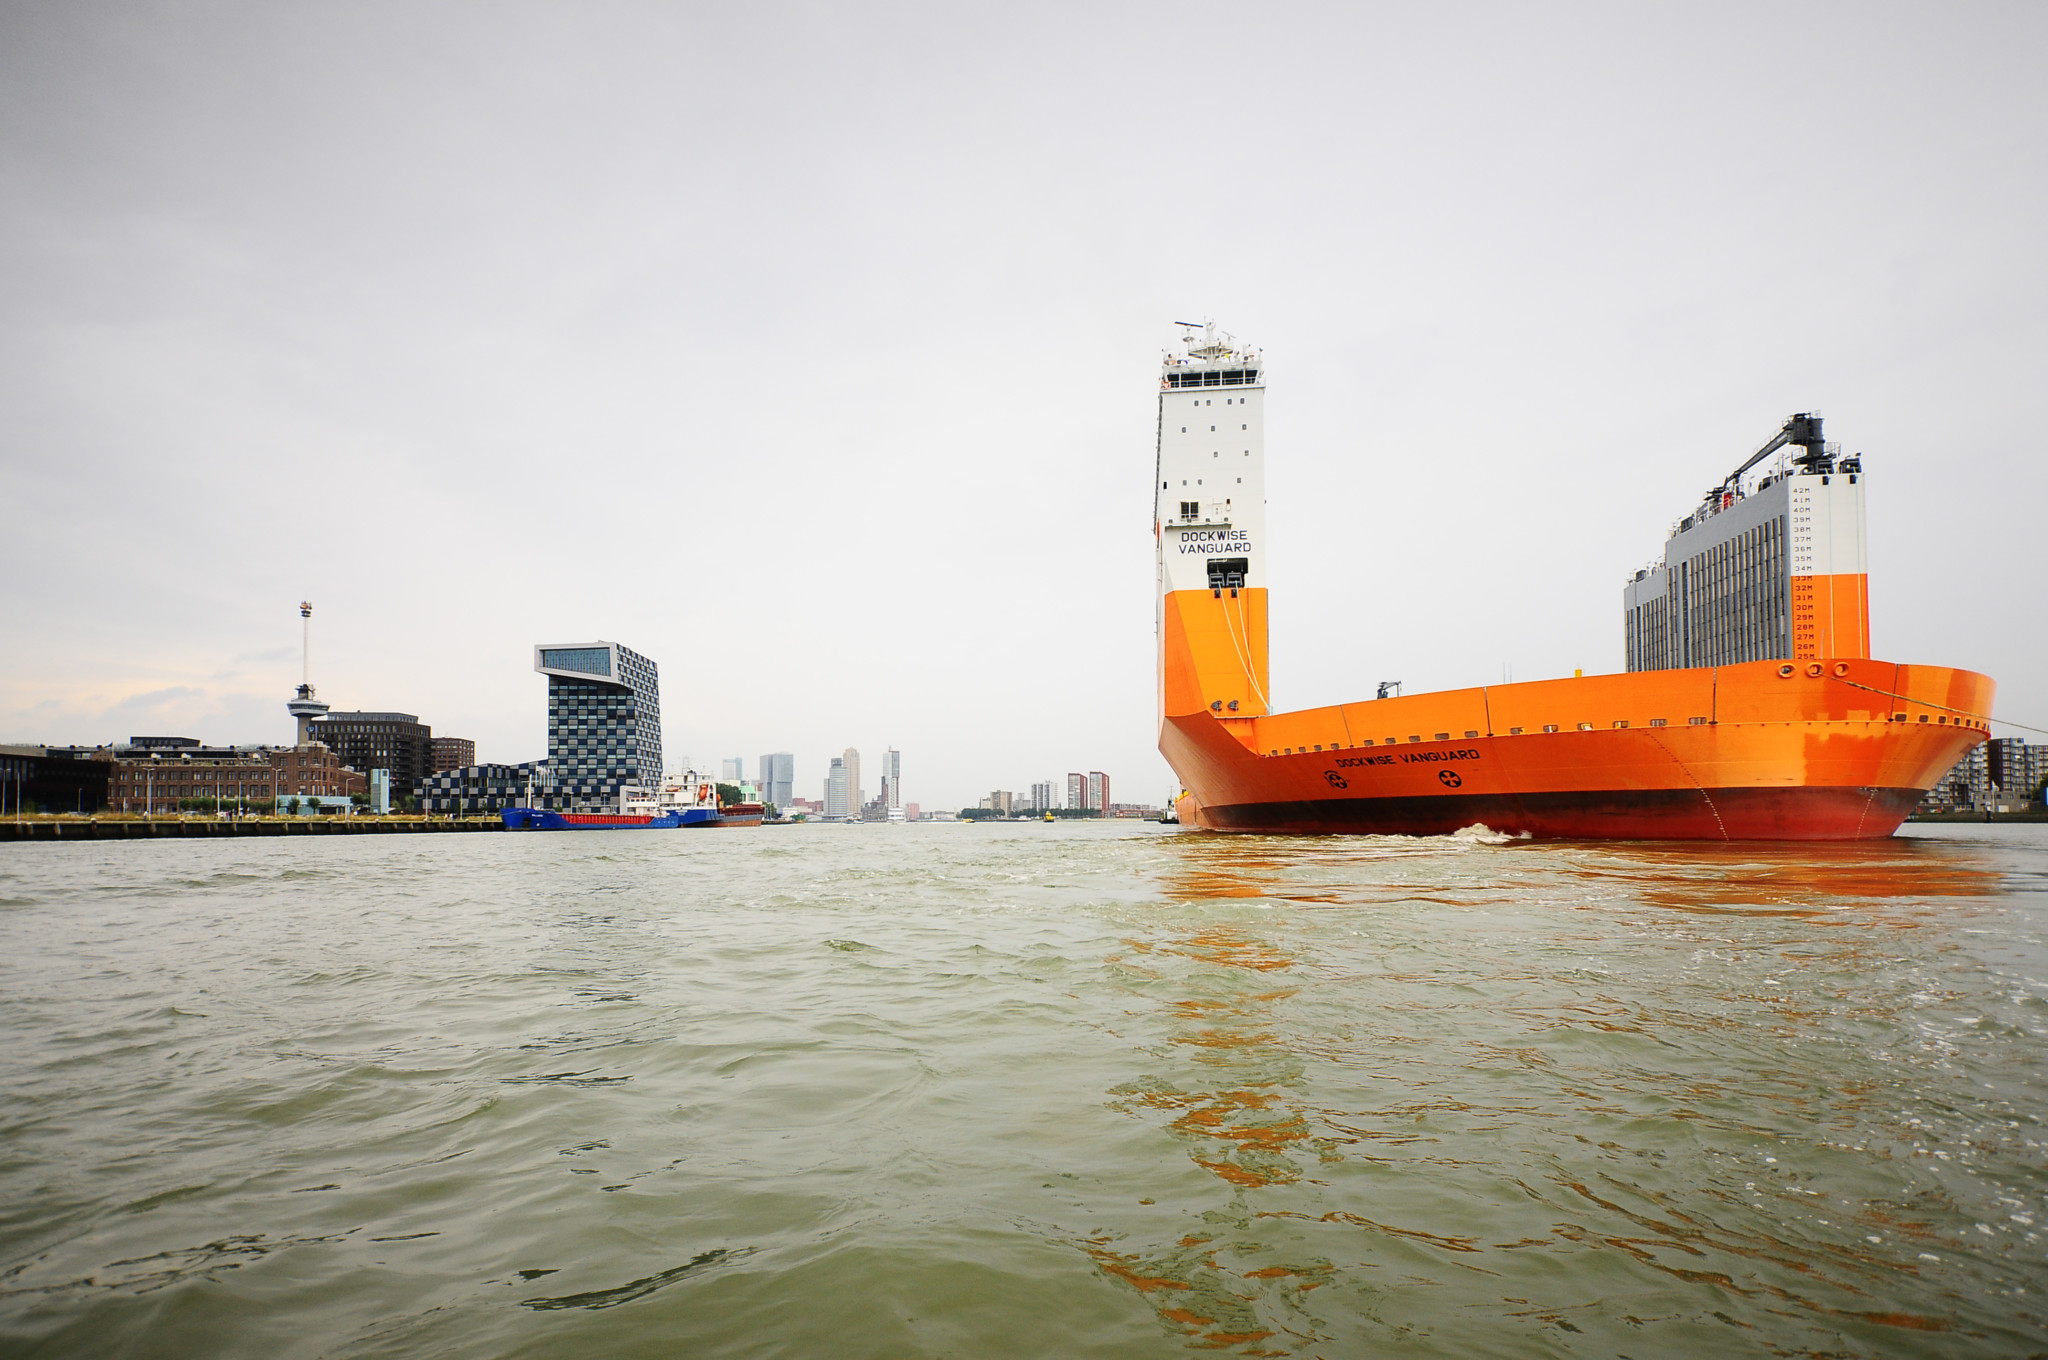 Rotterdam, the Netherlands | STC Maritime & Logistics University